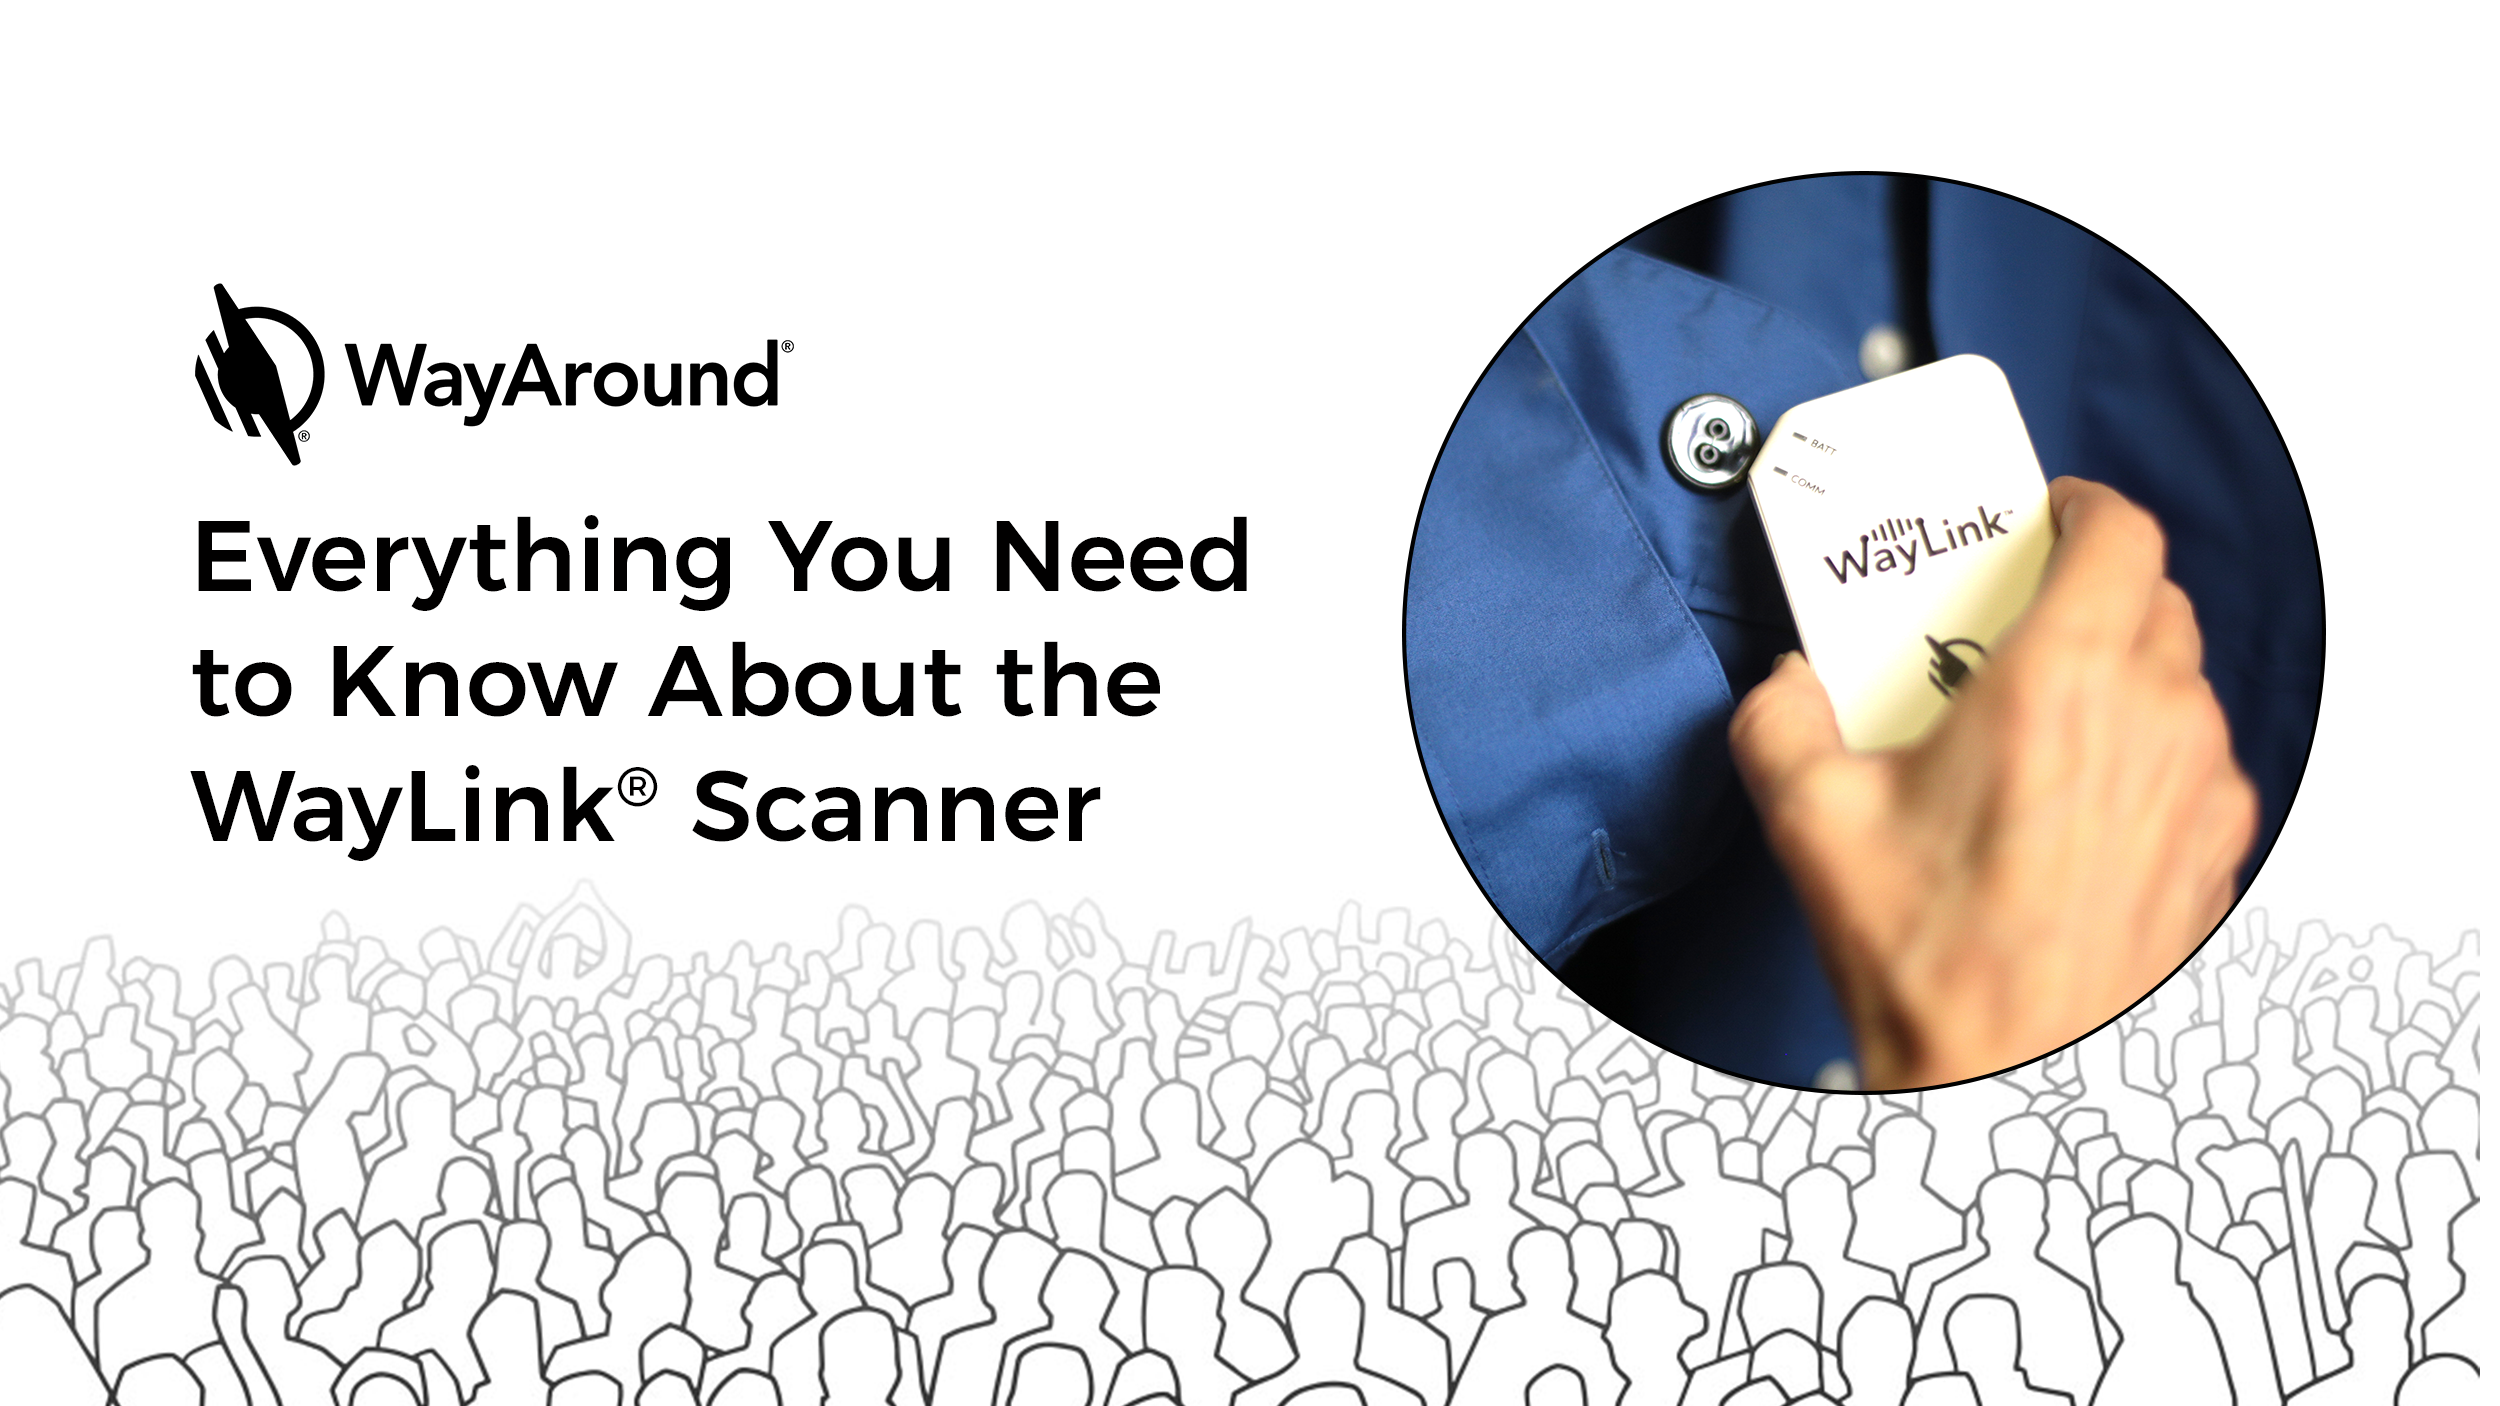 Image with a photograph of someone holding a WayLink scanner to a button on a dress shirt. An illustration of a crowd of human silhouettes stretches across the bottom. Text reads: Everything You Need to Know About the WayLink Scanner.